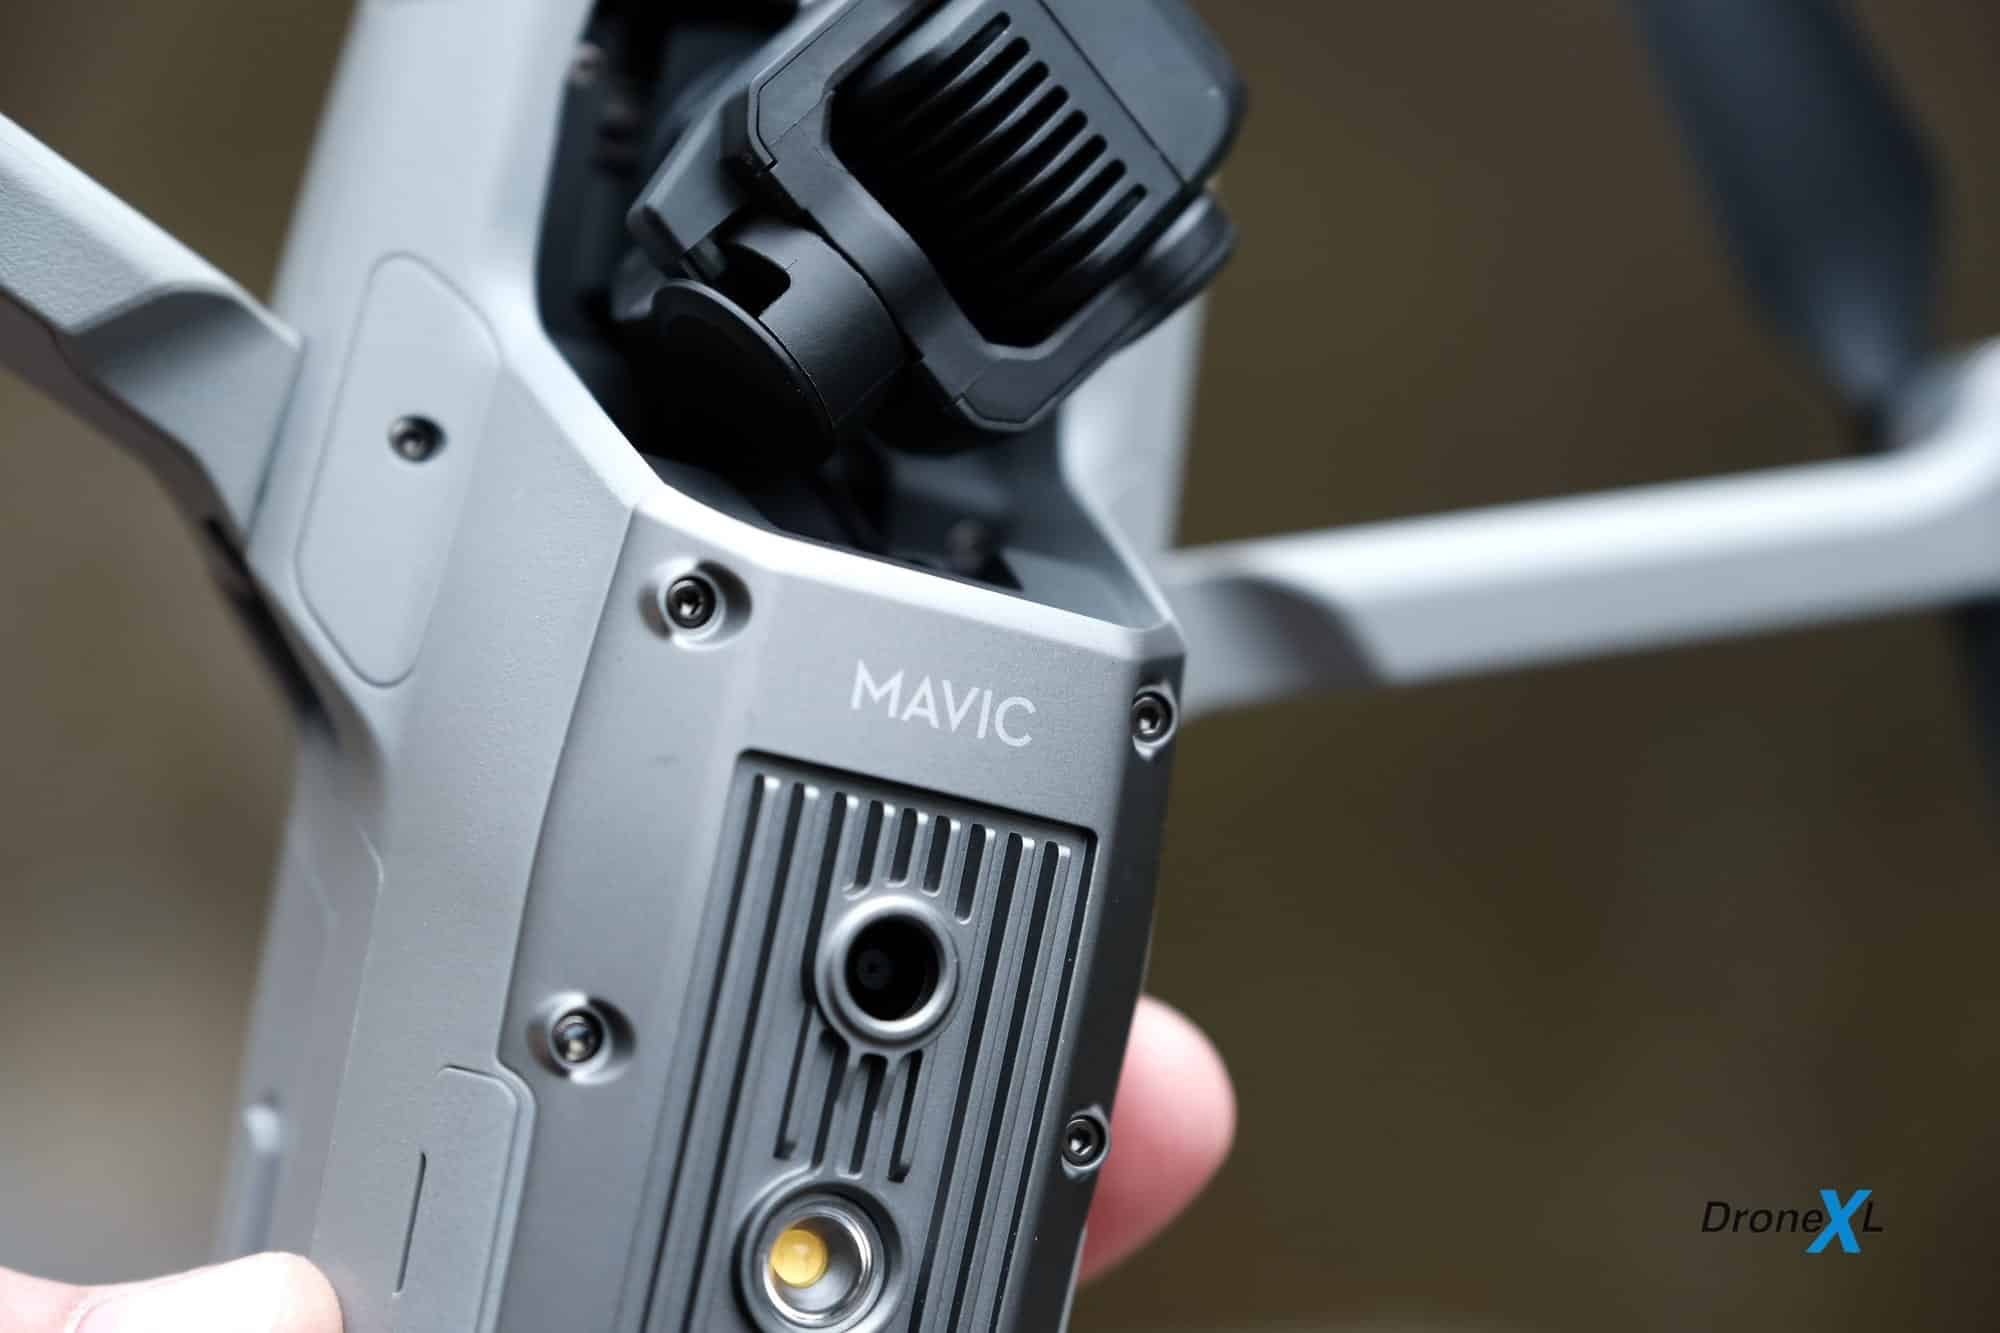 Should you buy the DJI Mavic Air 2?